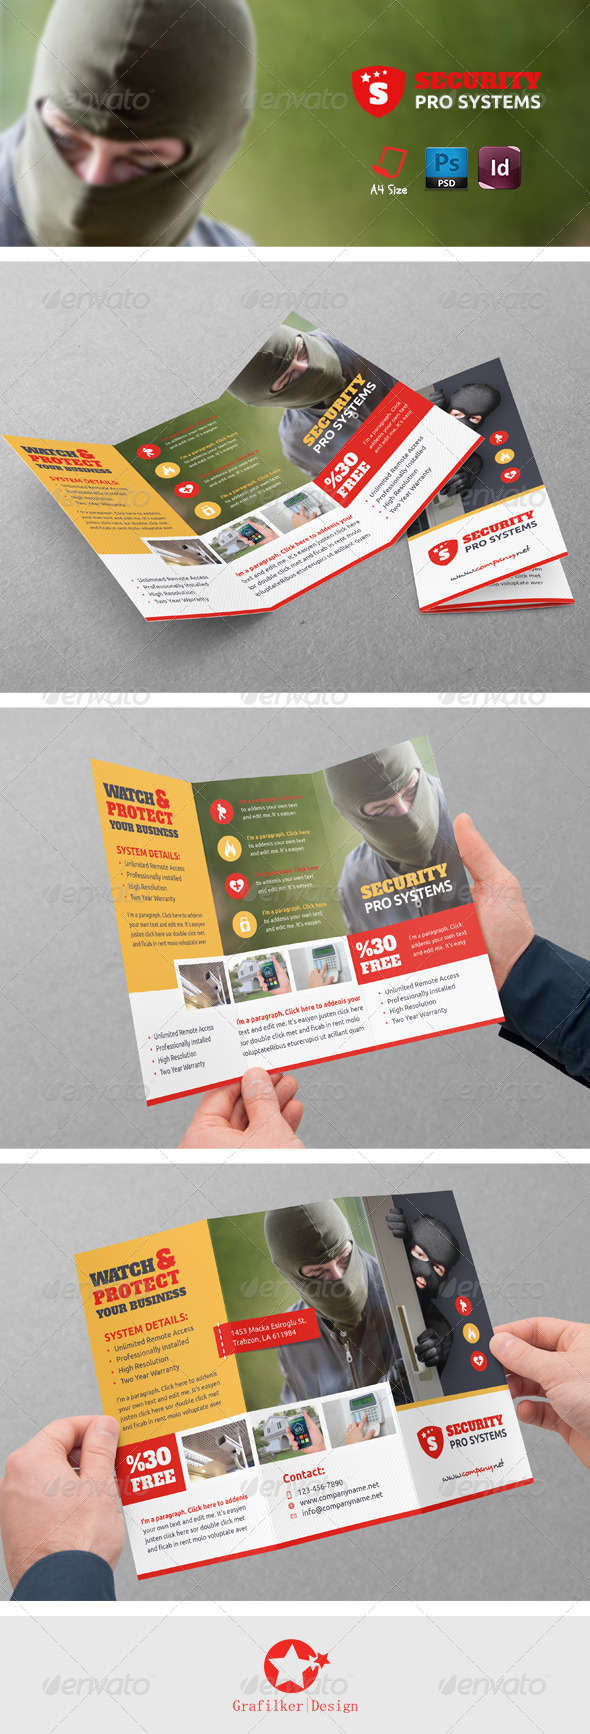 GraphicRiver Security Systems Tri-Fold Templates 8778112